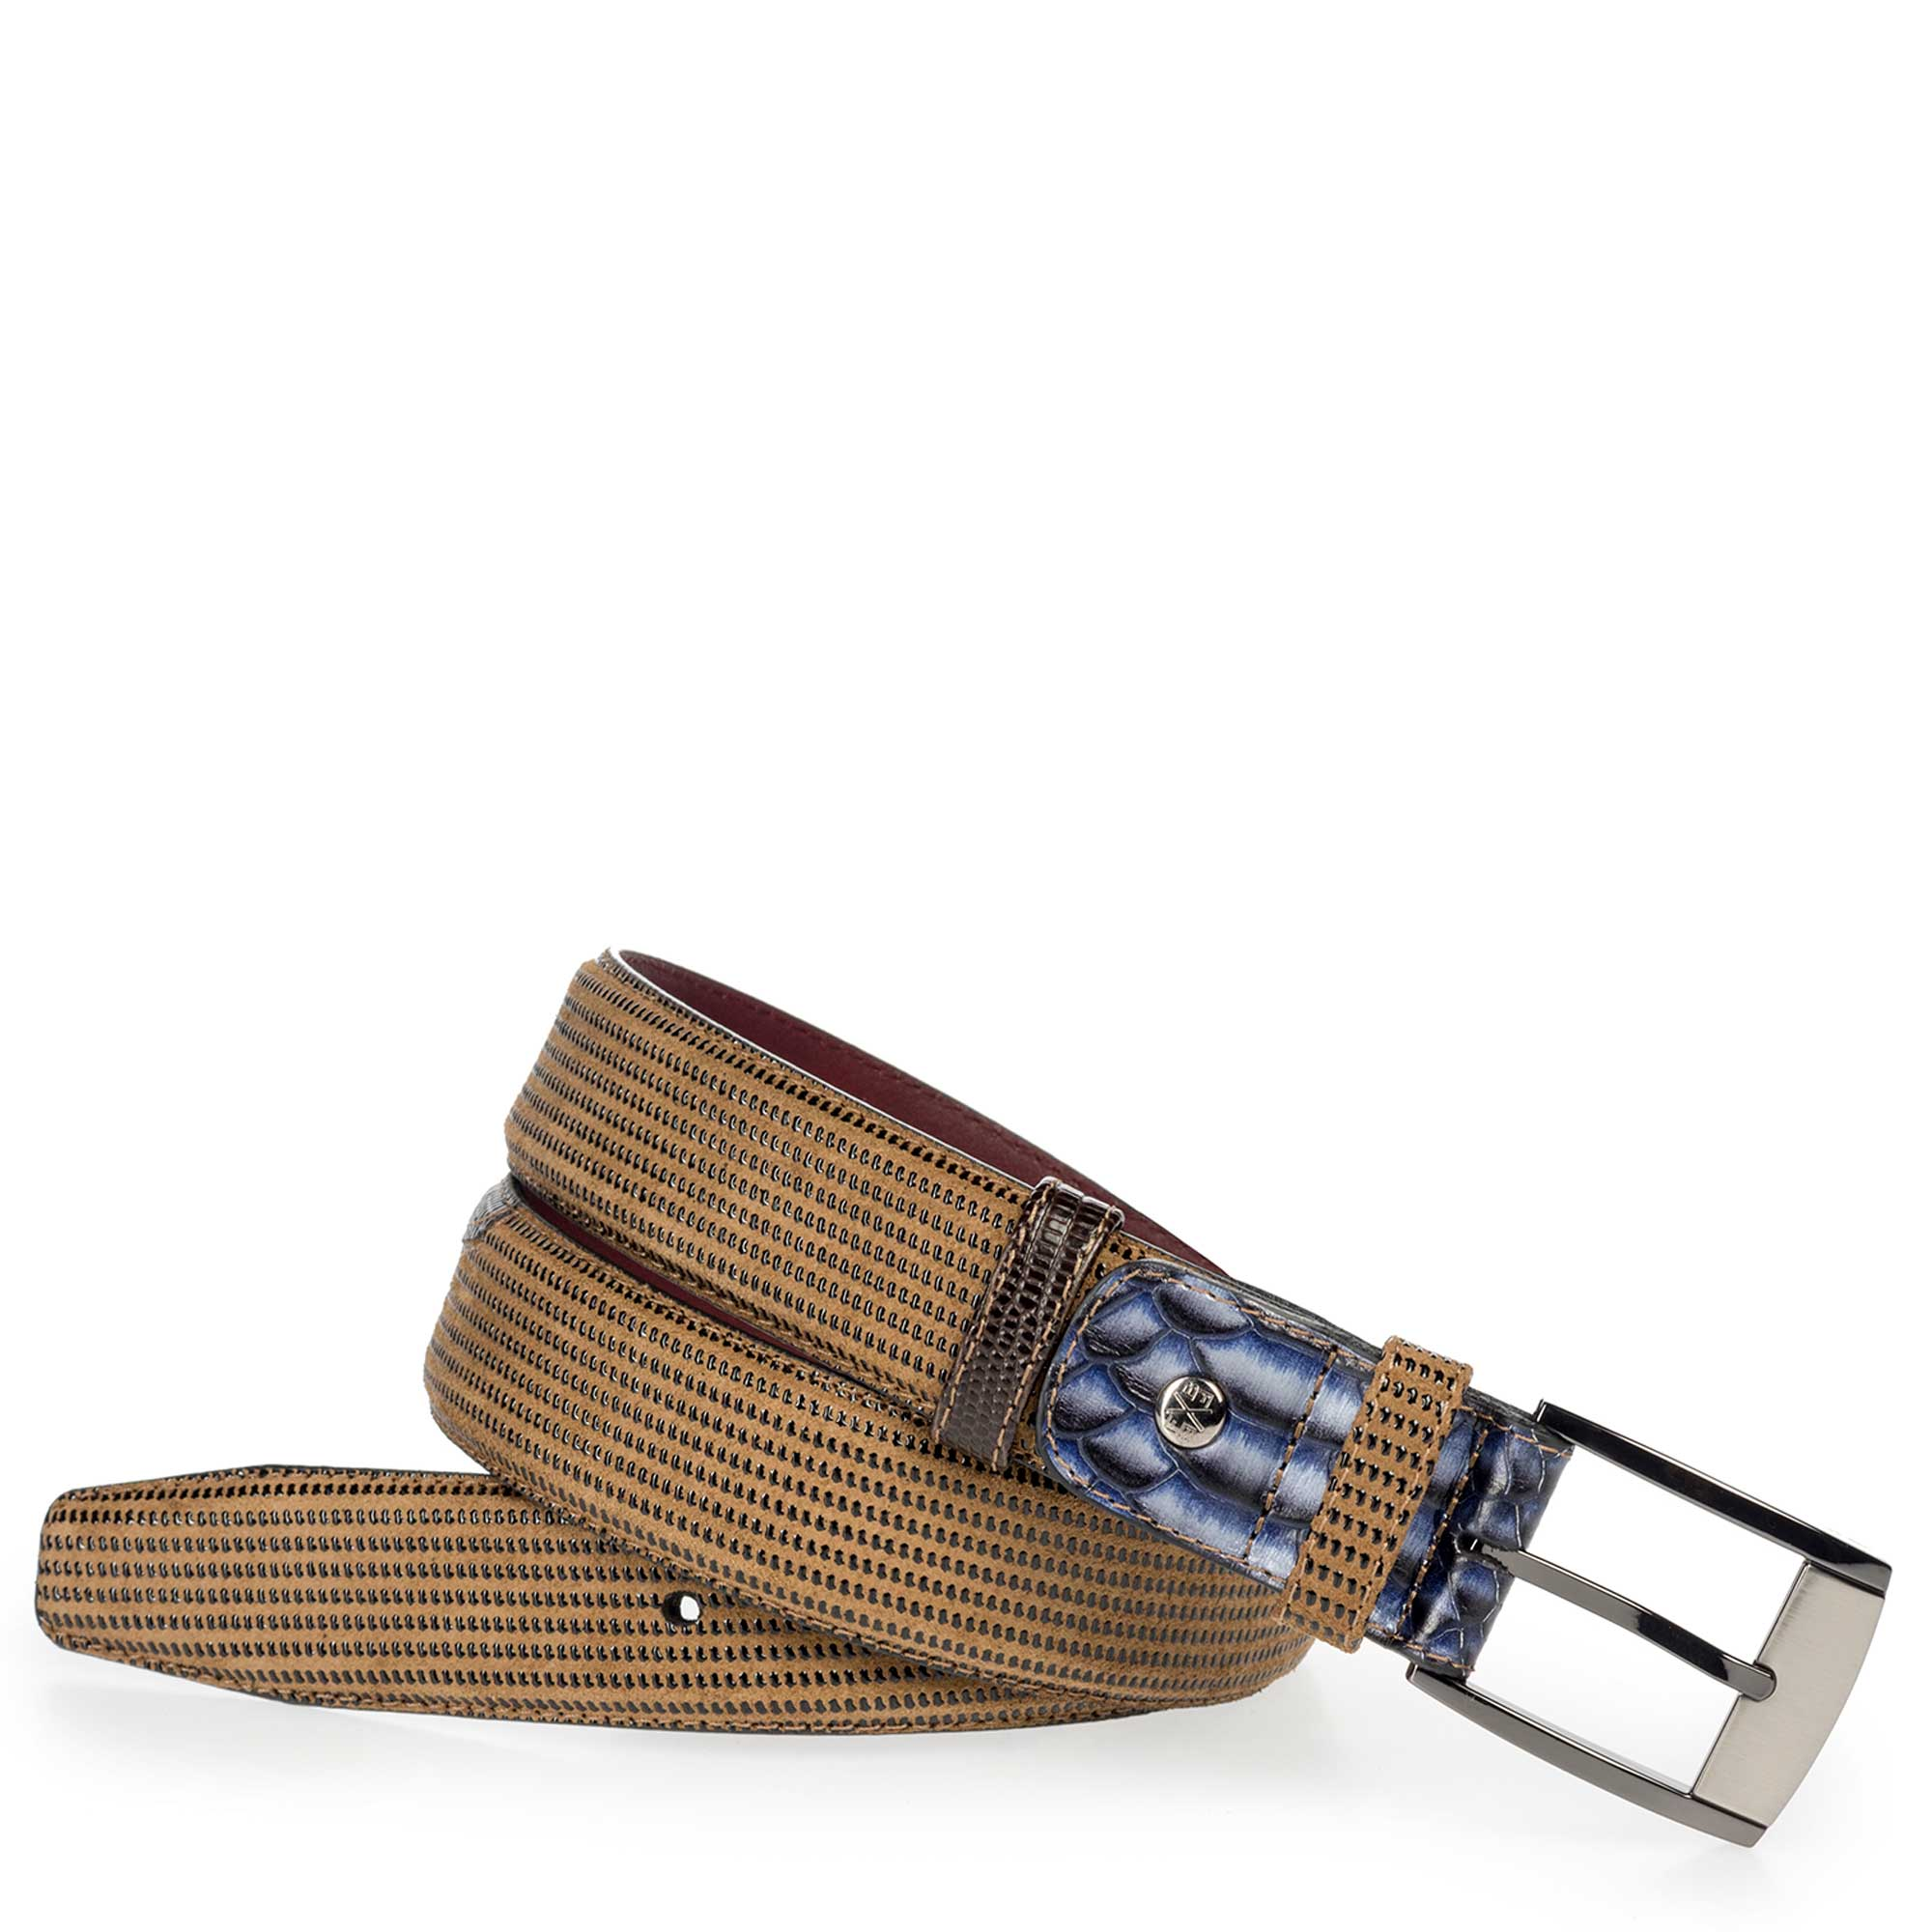 75176/01 - Camel-coloured suede leather belt with pattern